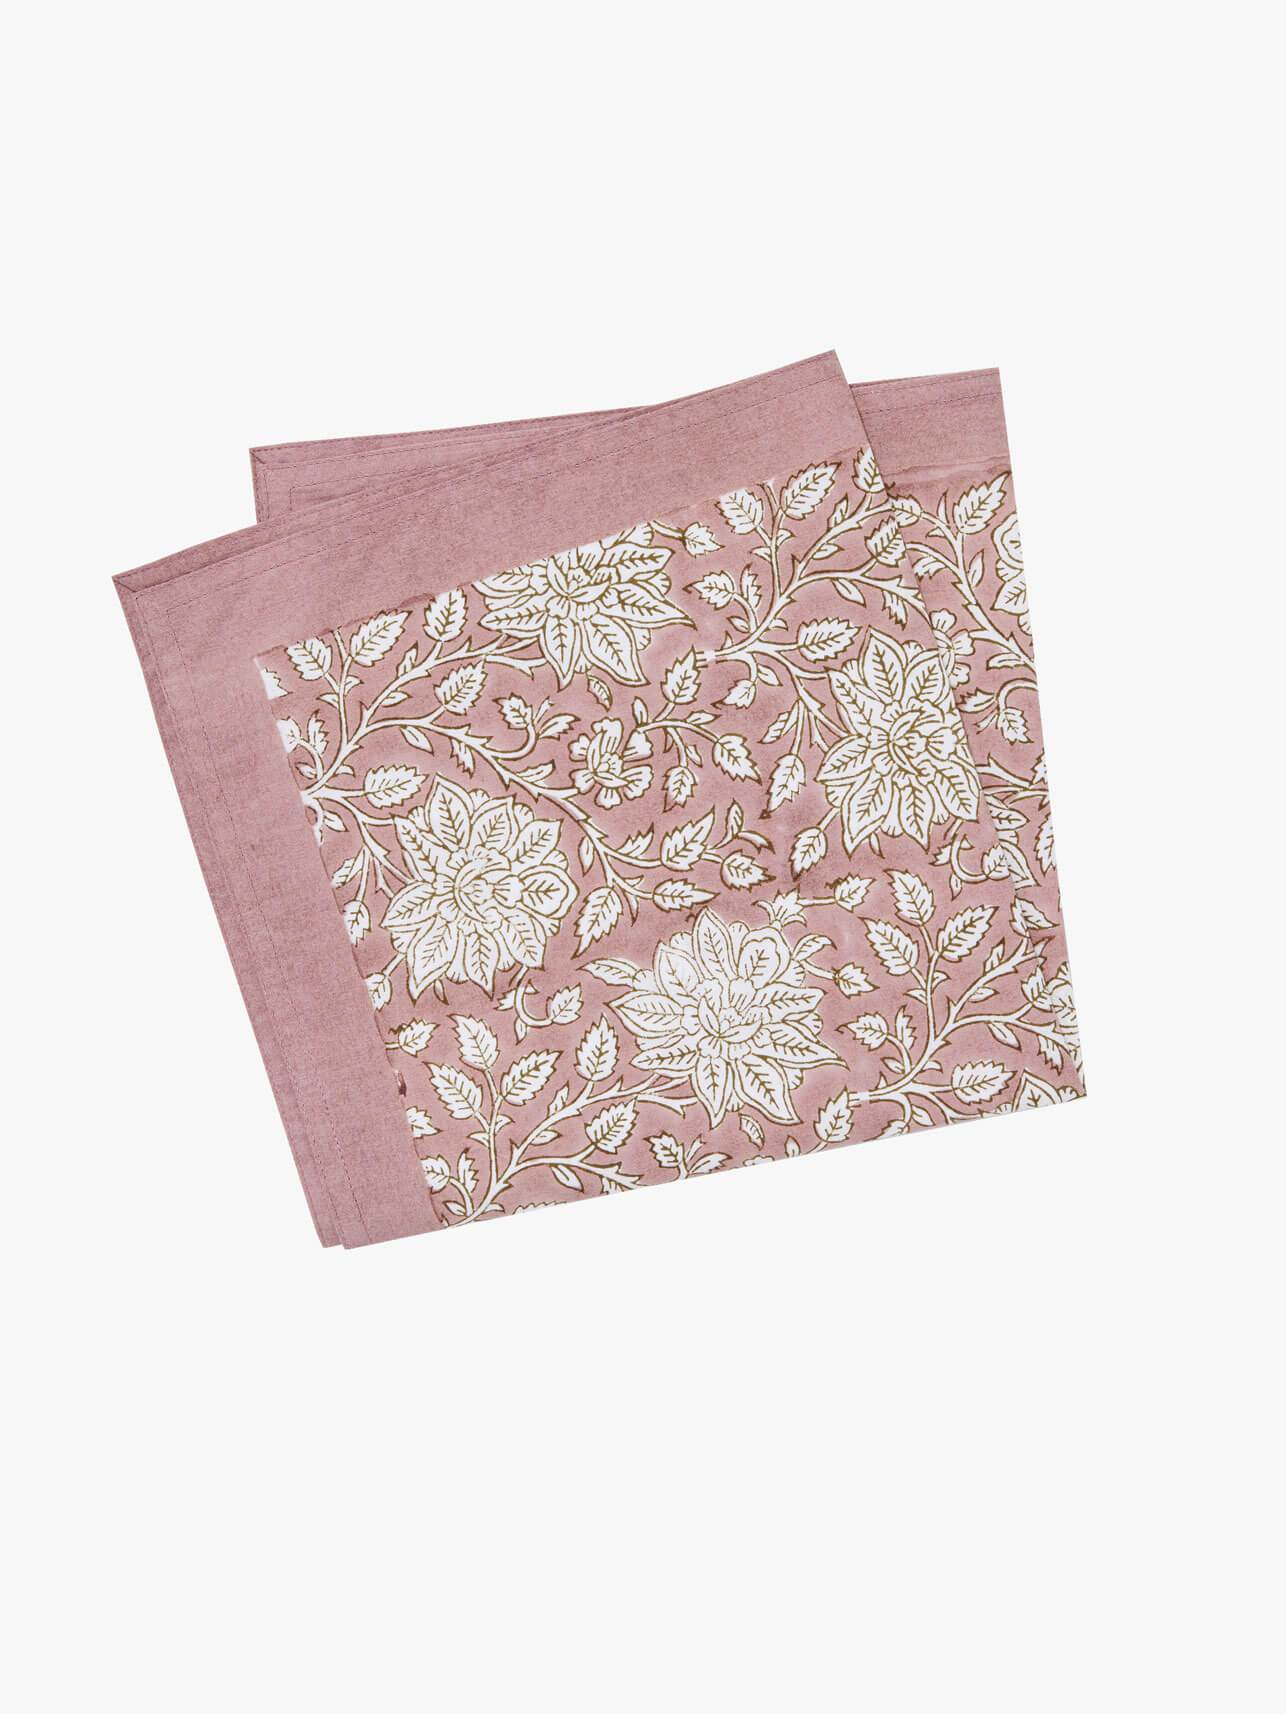 Sienna Napkin Set - Blush Napkin Set Summer 21